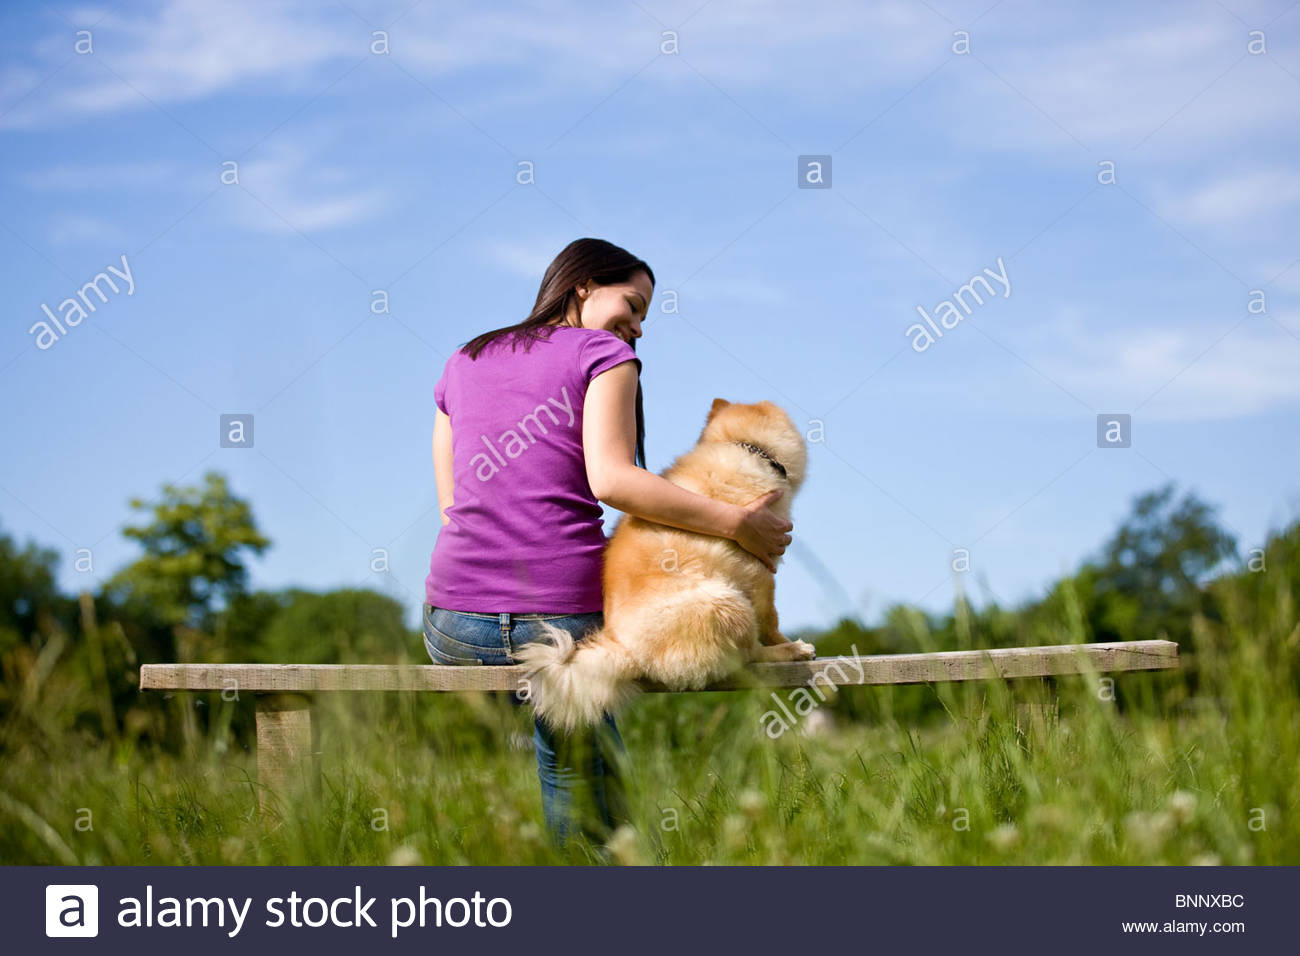 A young woman and her dog sitting on a bench - Stock Image